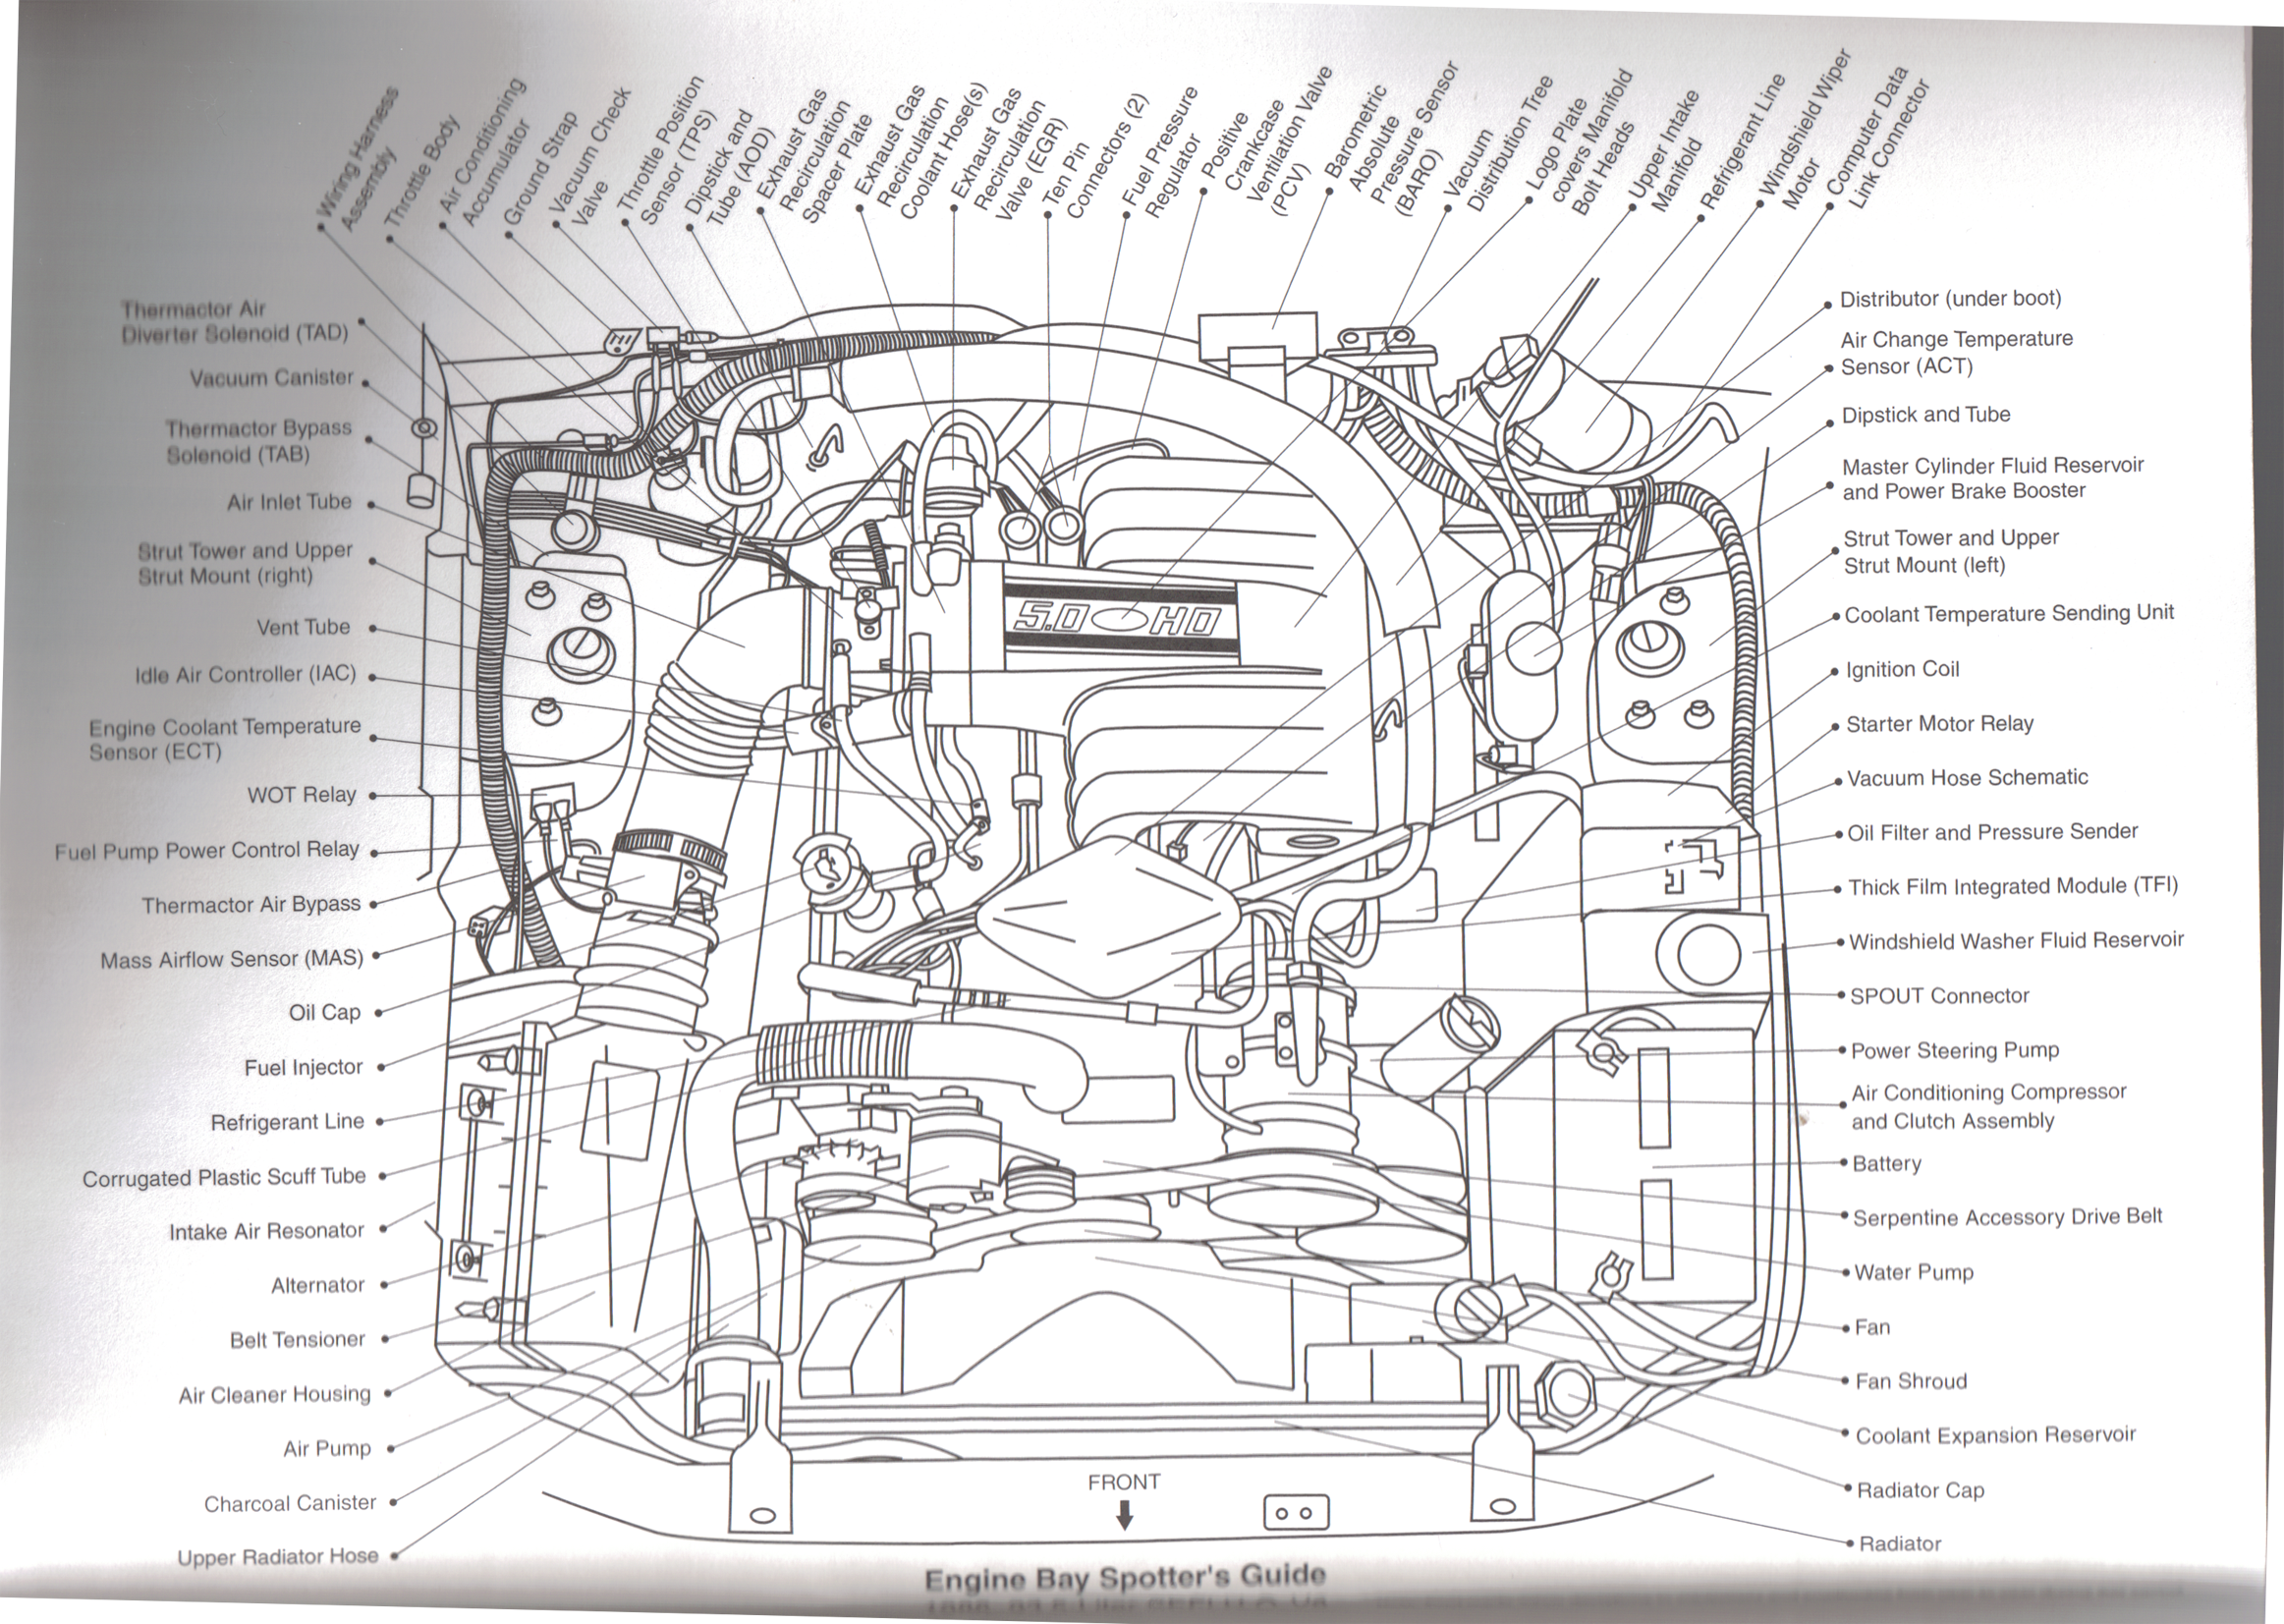 1990 Mustang Aod Wiring Diagram Free For You 88 Radio Everything Need To Know About 1979 1993 Foxbody Mustangs Rh Americanmuscle Com 89 Ford Schematics Horn